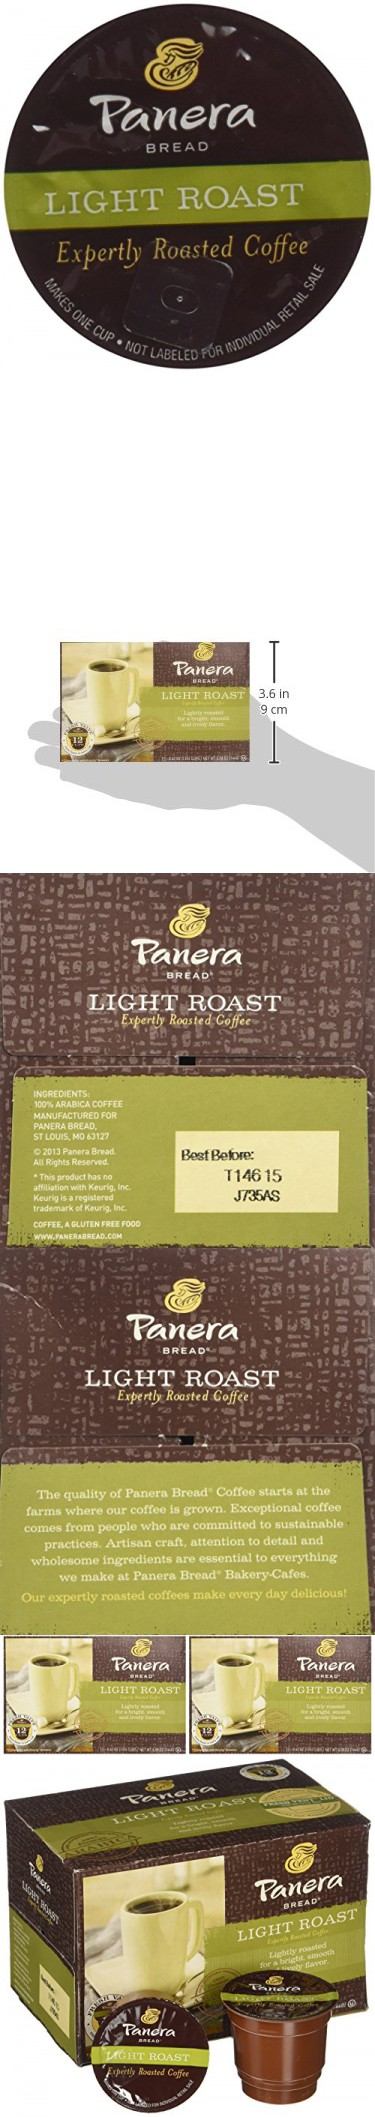 Panera Bread Coffee Box Awesome Panera Bread Kcup Single Serve Coffee 12 Count 508Oz Box Pack Inspiration Design